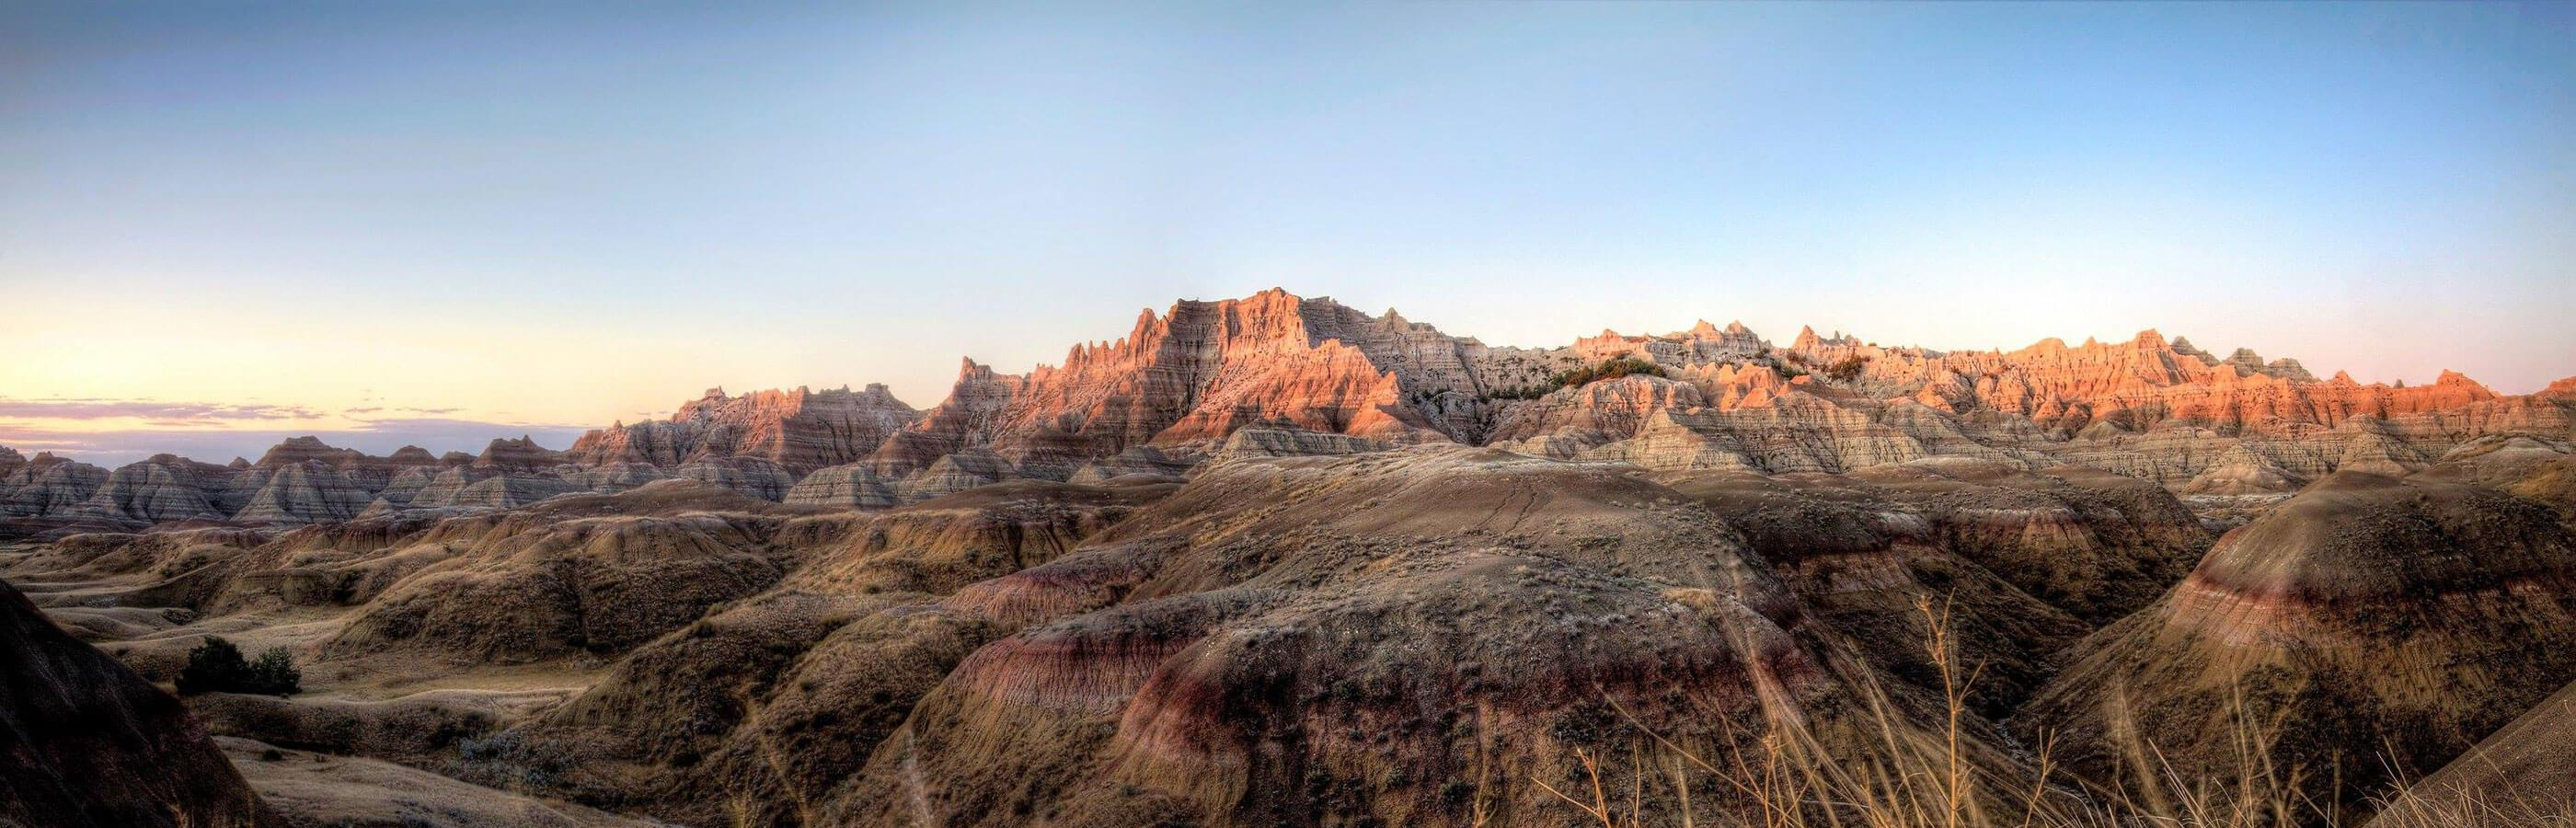 Sunrise hitting Badlands National Park in South Dakota